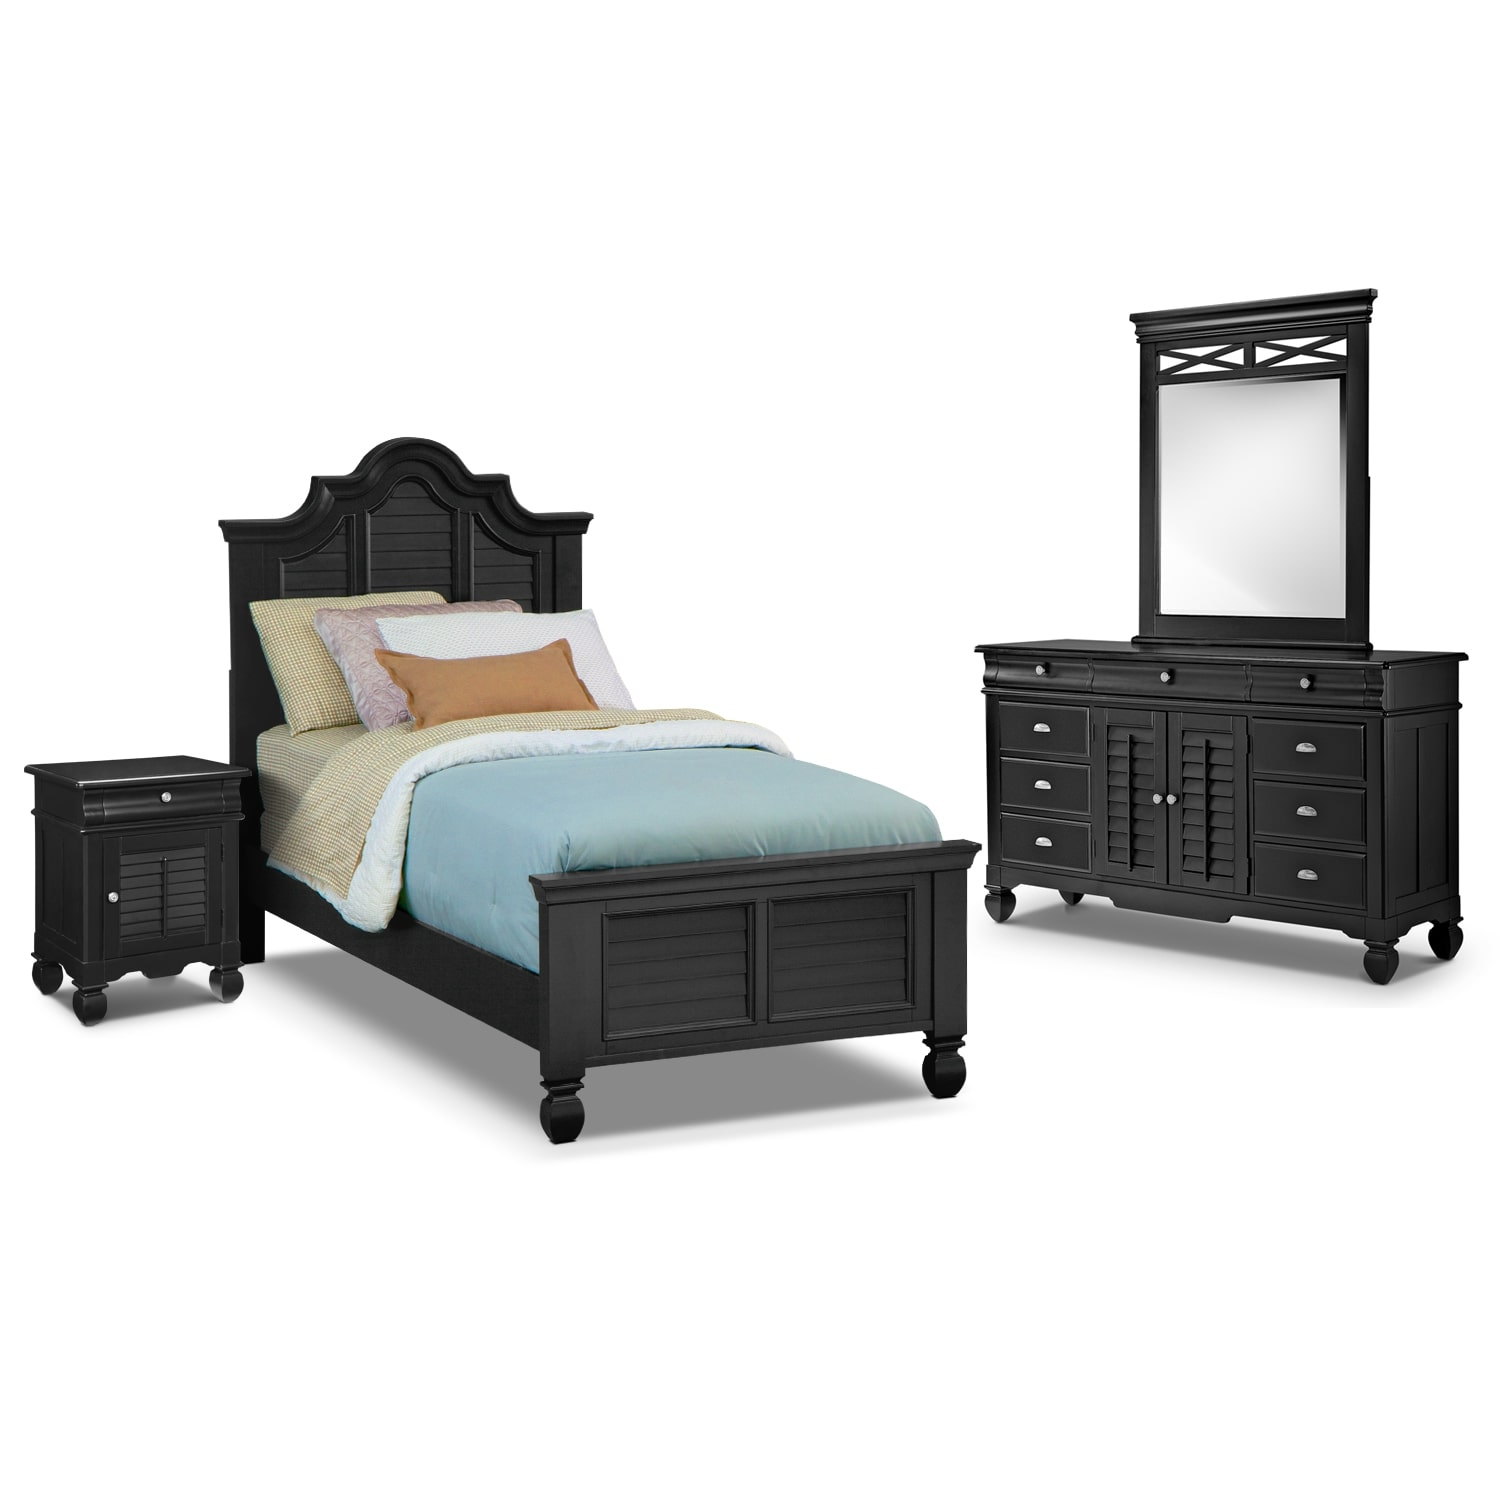 Plantation Cove 6-Piece Twin Bedroom Set with Door Nightstand - Black